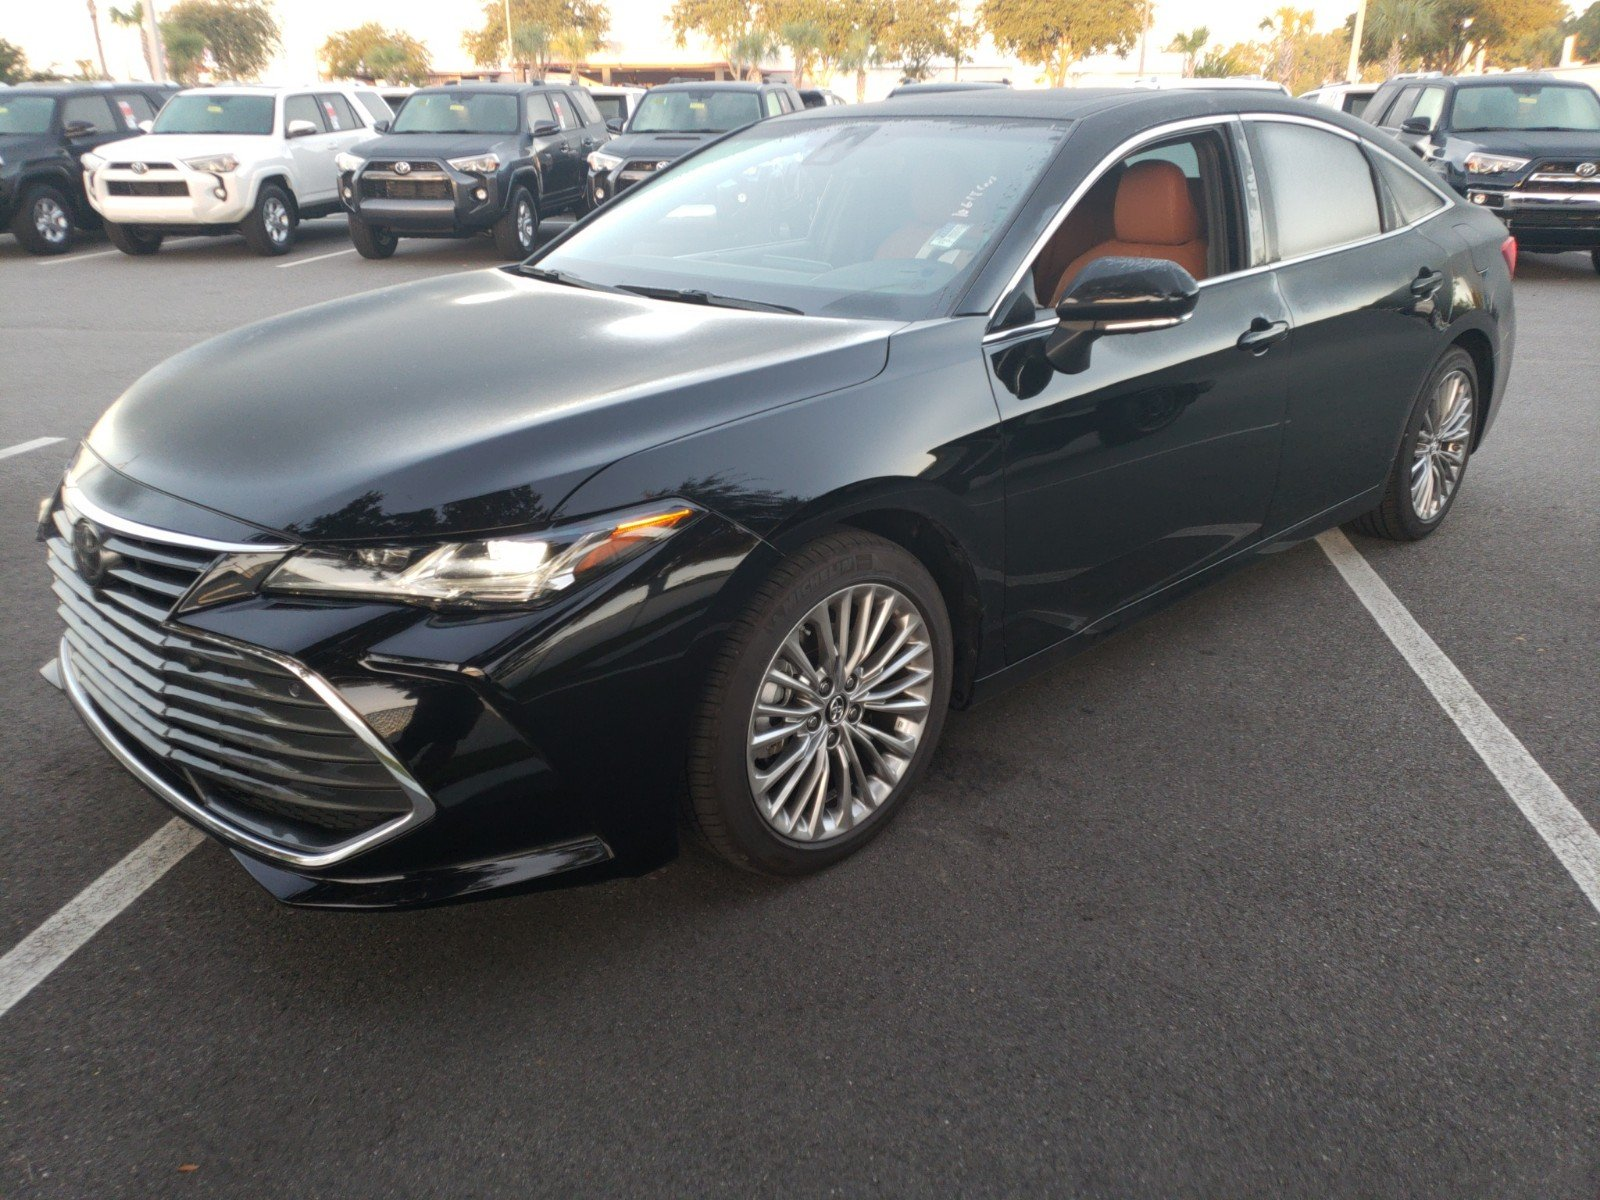 Certified Pre Owned 2019 Toyota Avalon Ltd 4dr Car In Jacksonville 2001 Fuel Filter Location